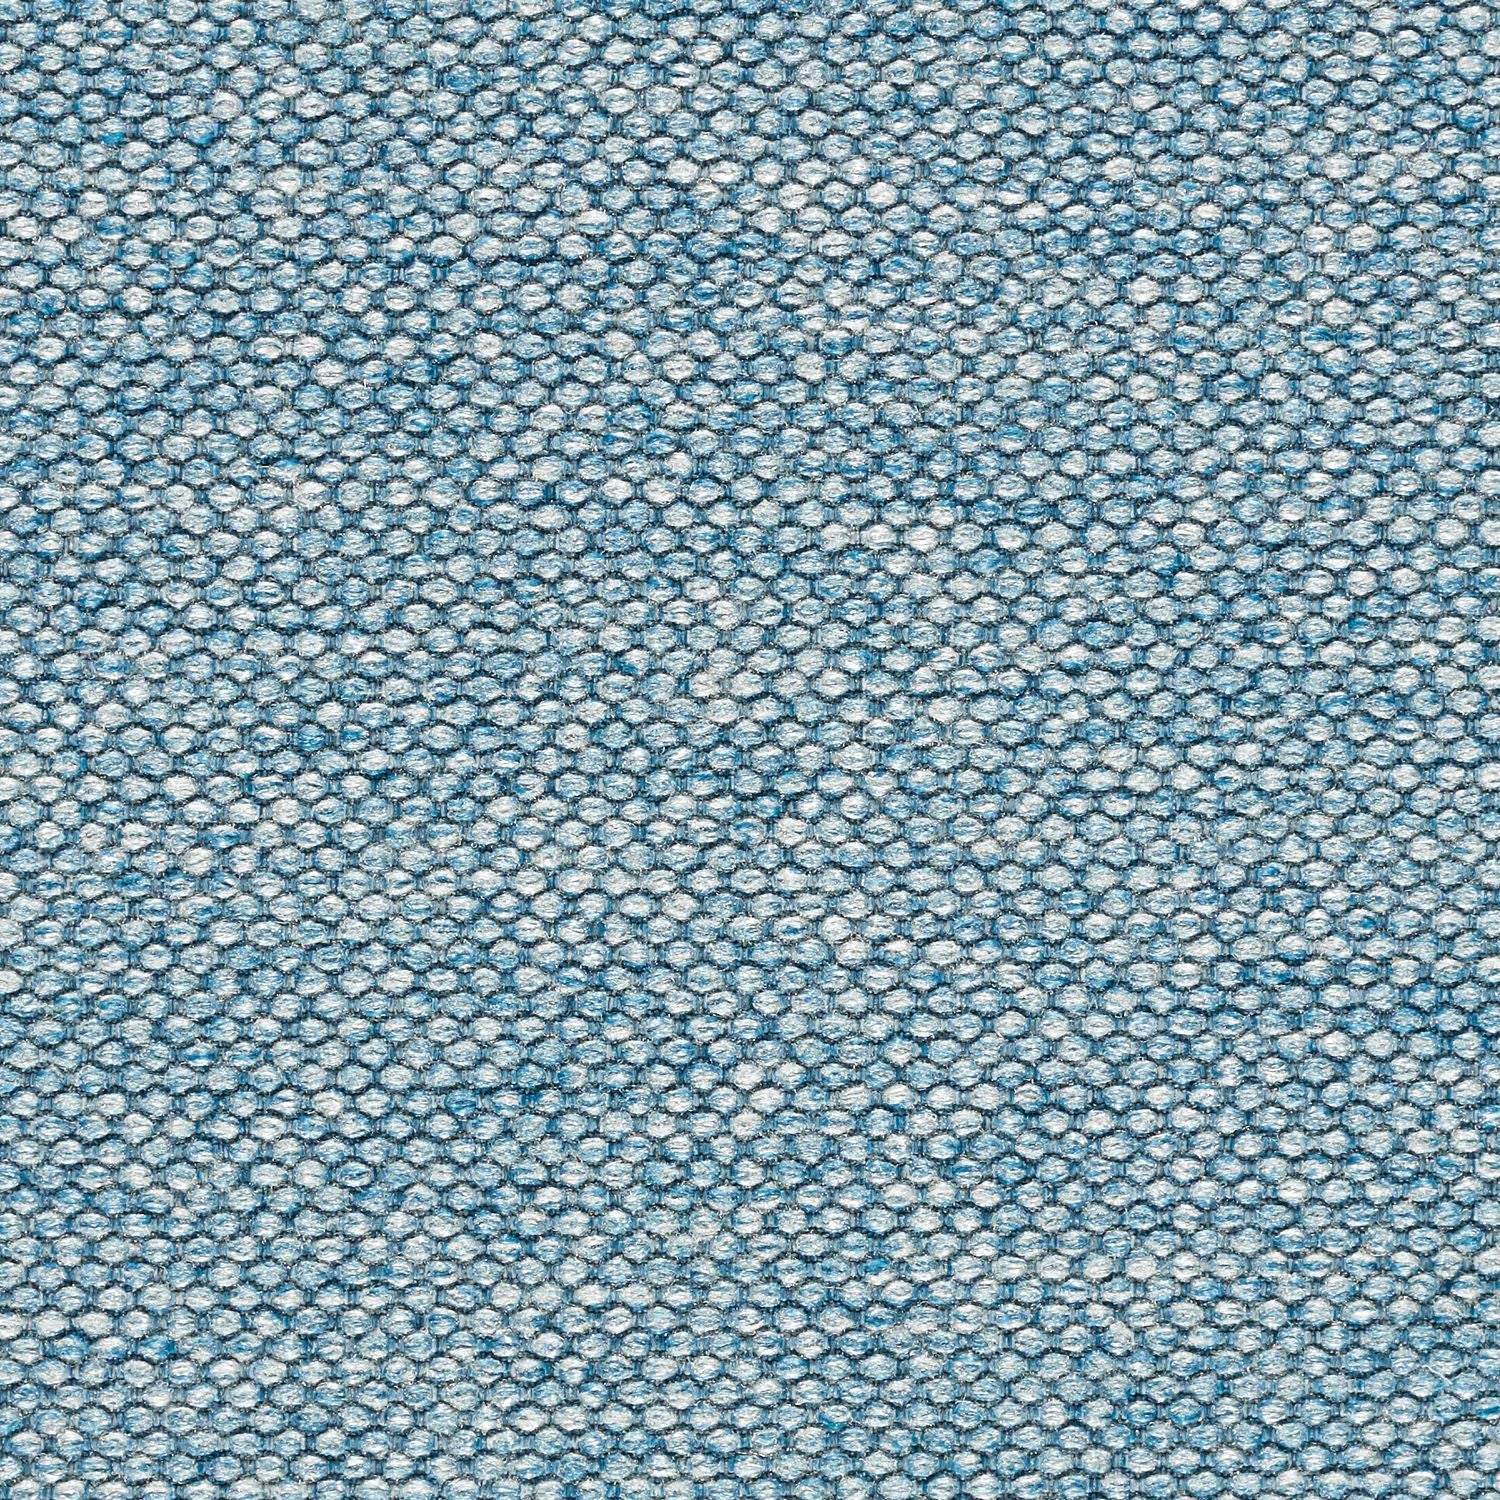 Digi Tweed - Clear Tweed - 4058 - 19